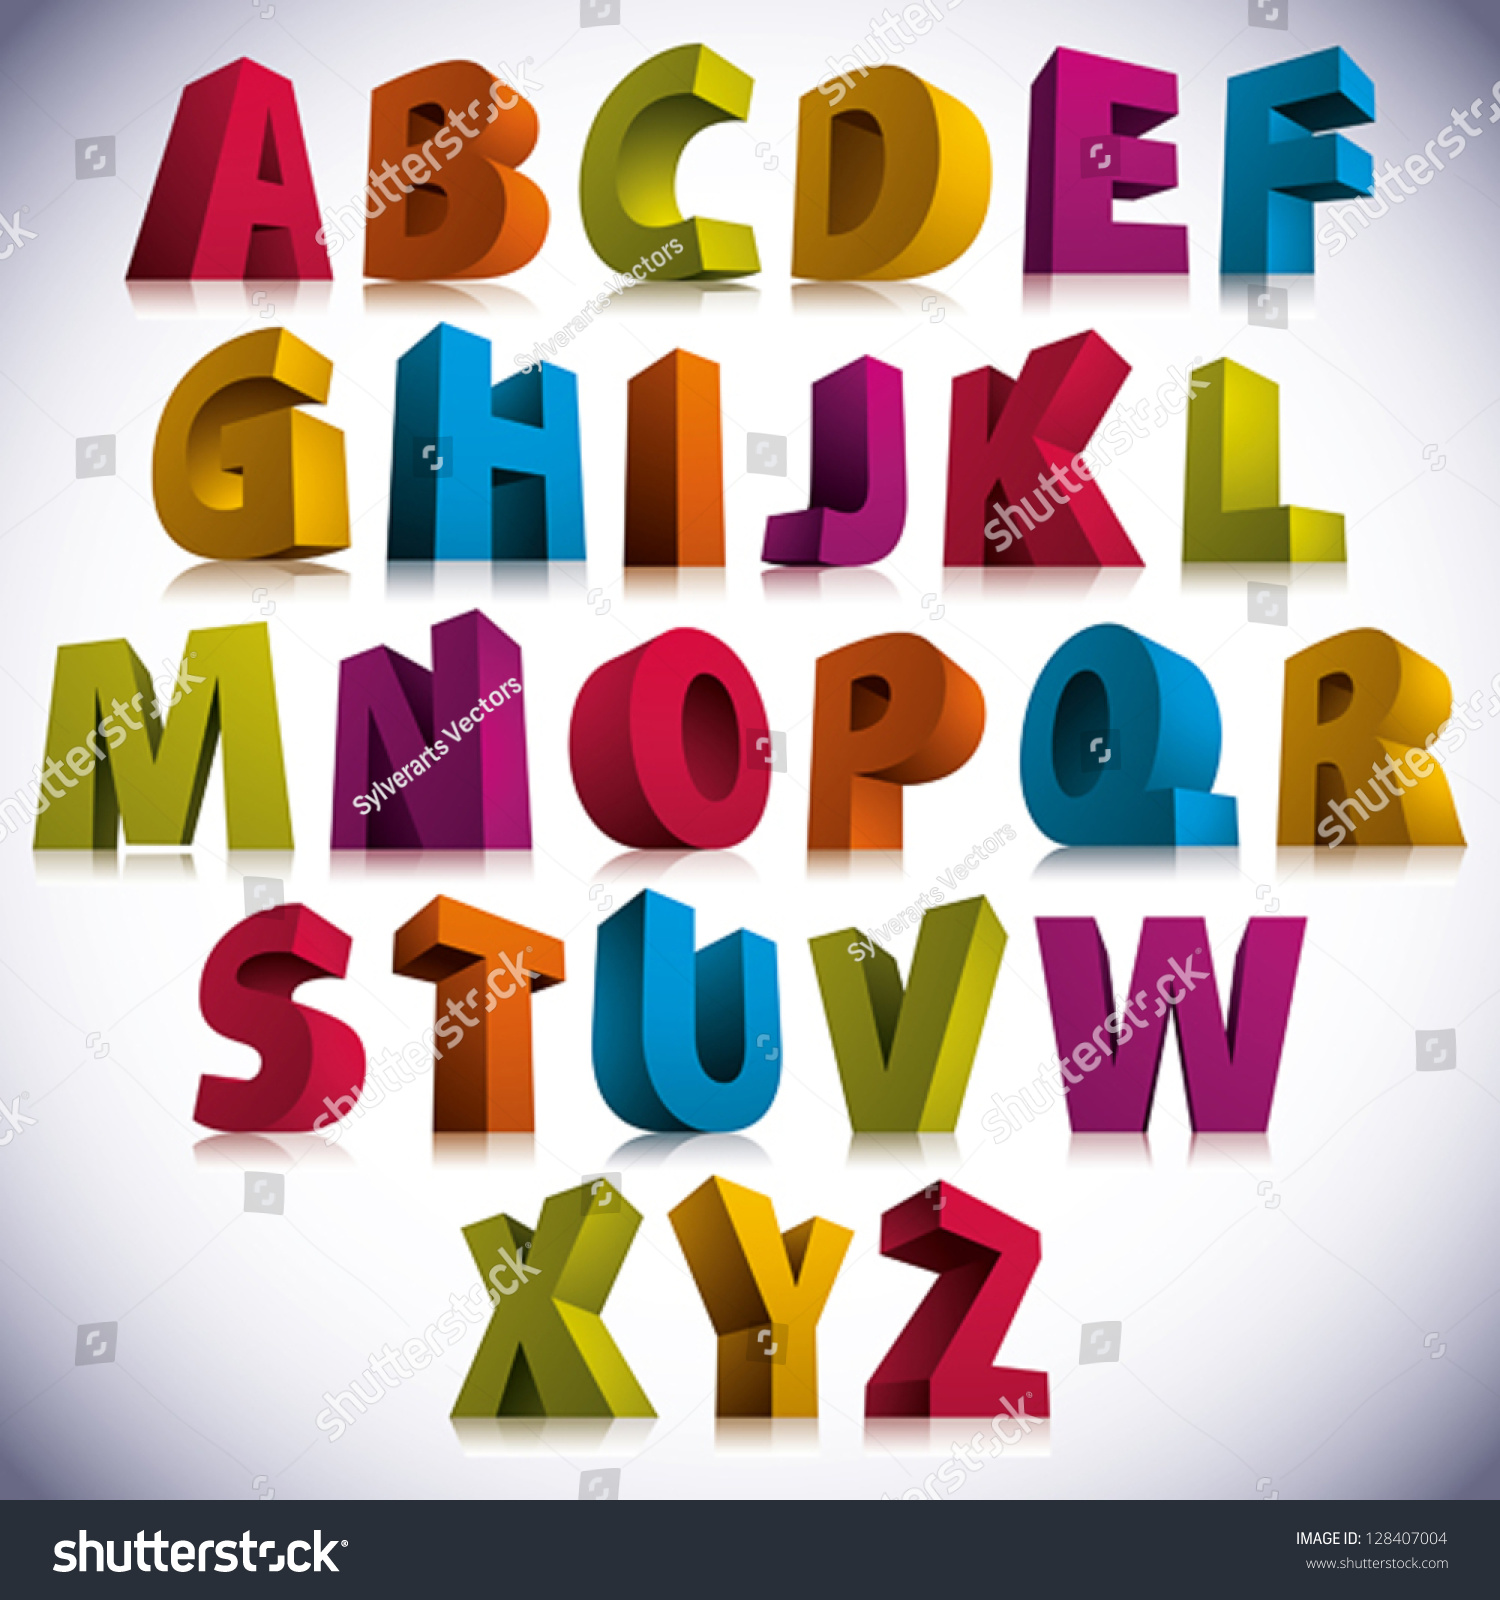 3d Font Big Colorful Letters Standing Stock Vector 128407004 ...